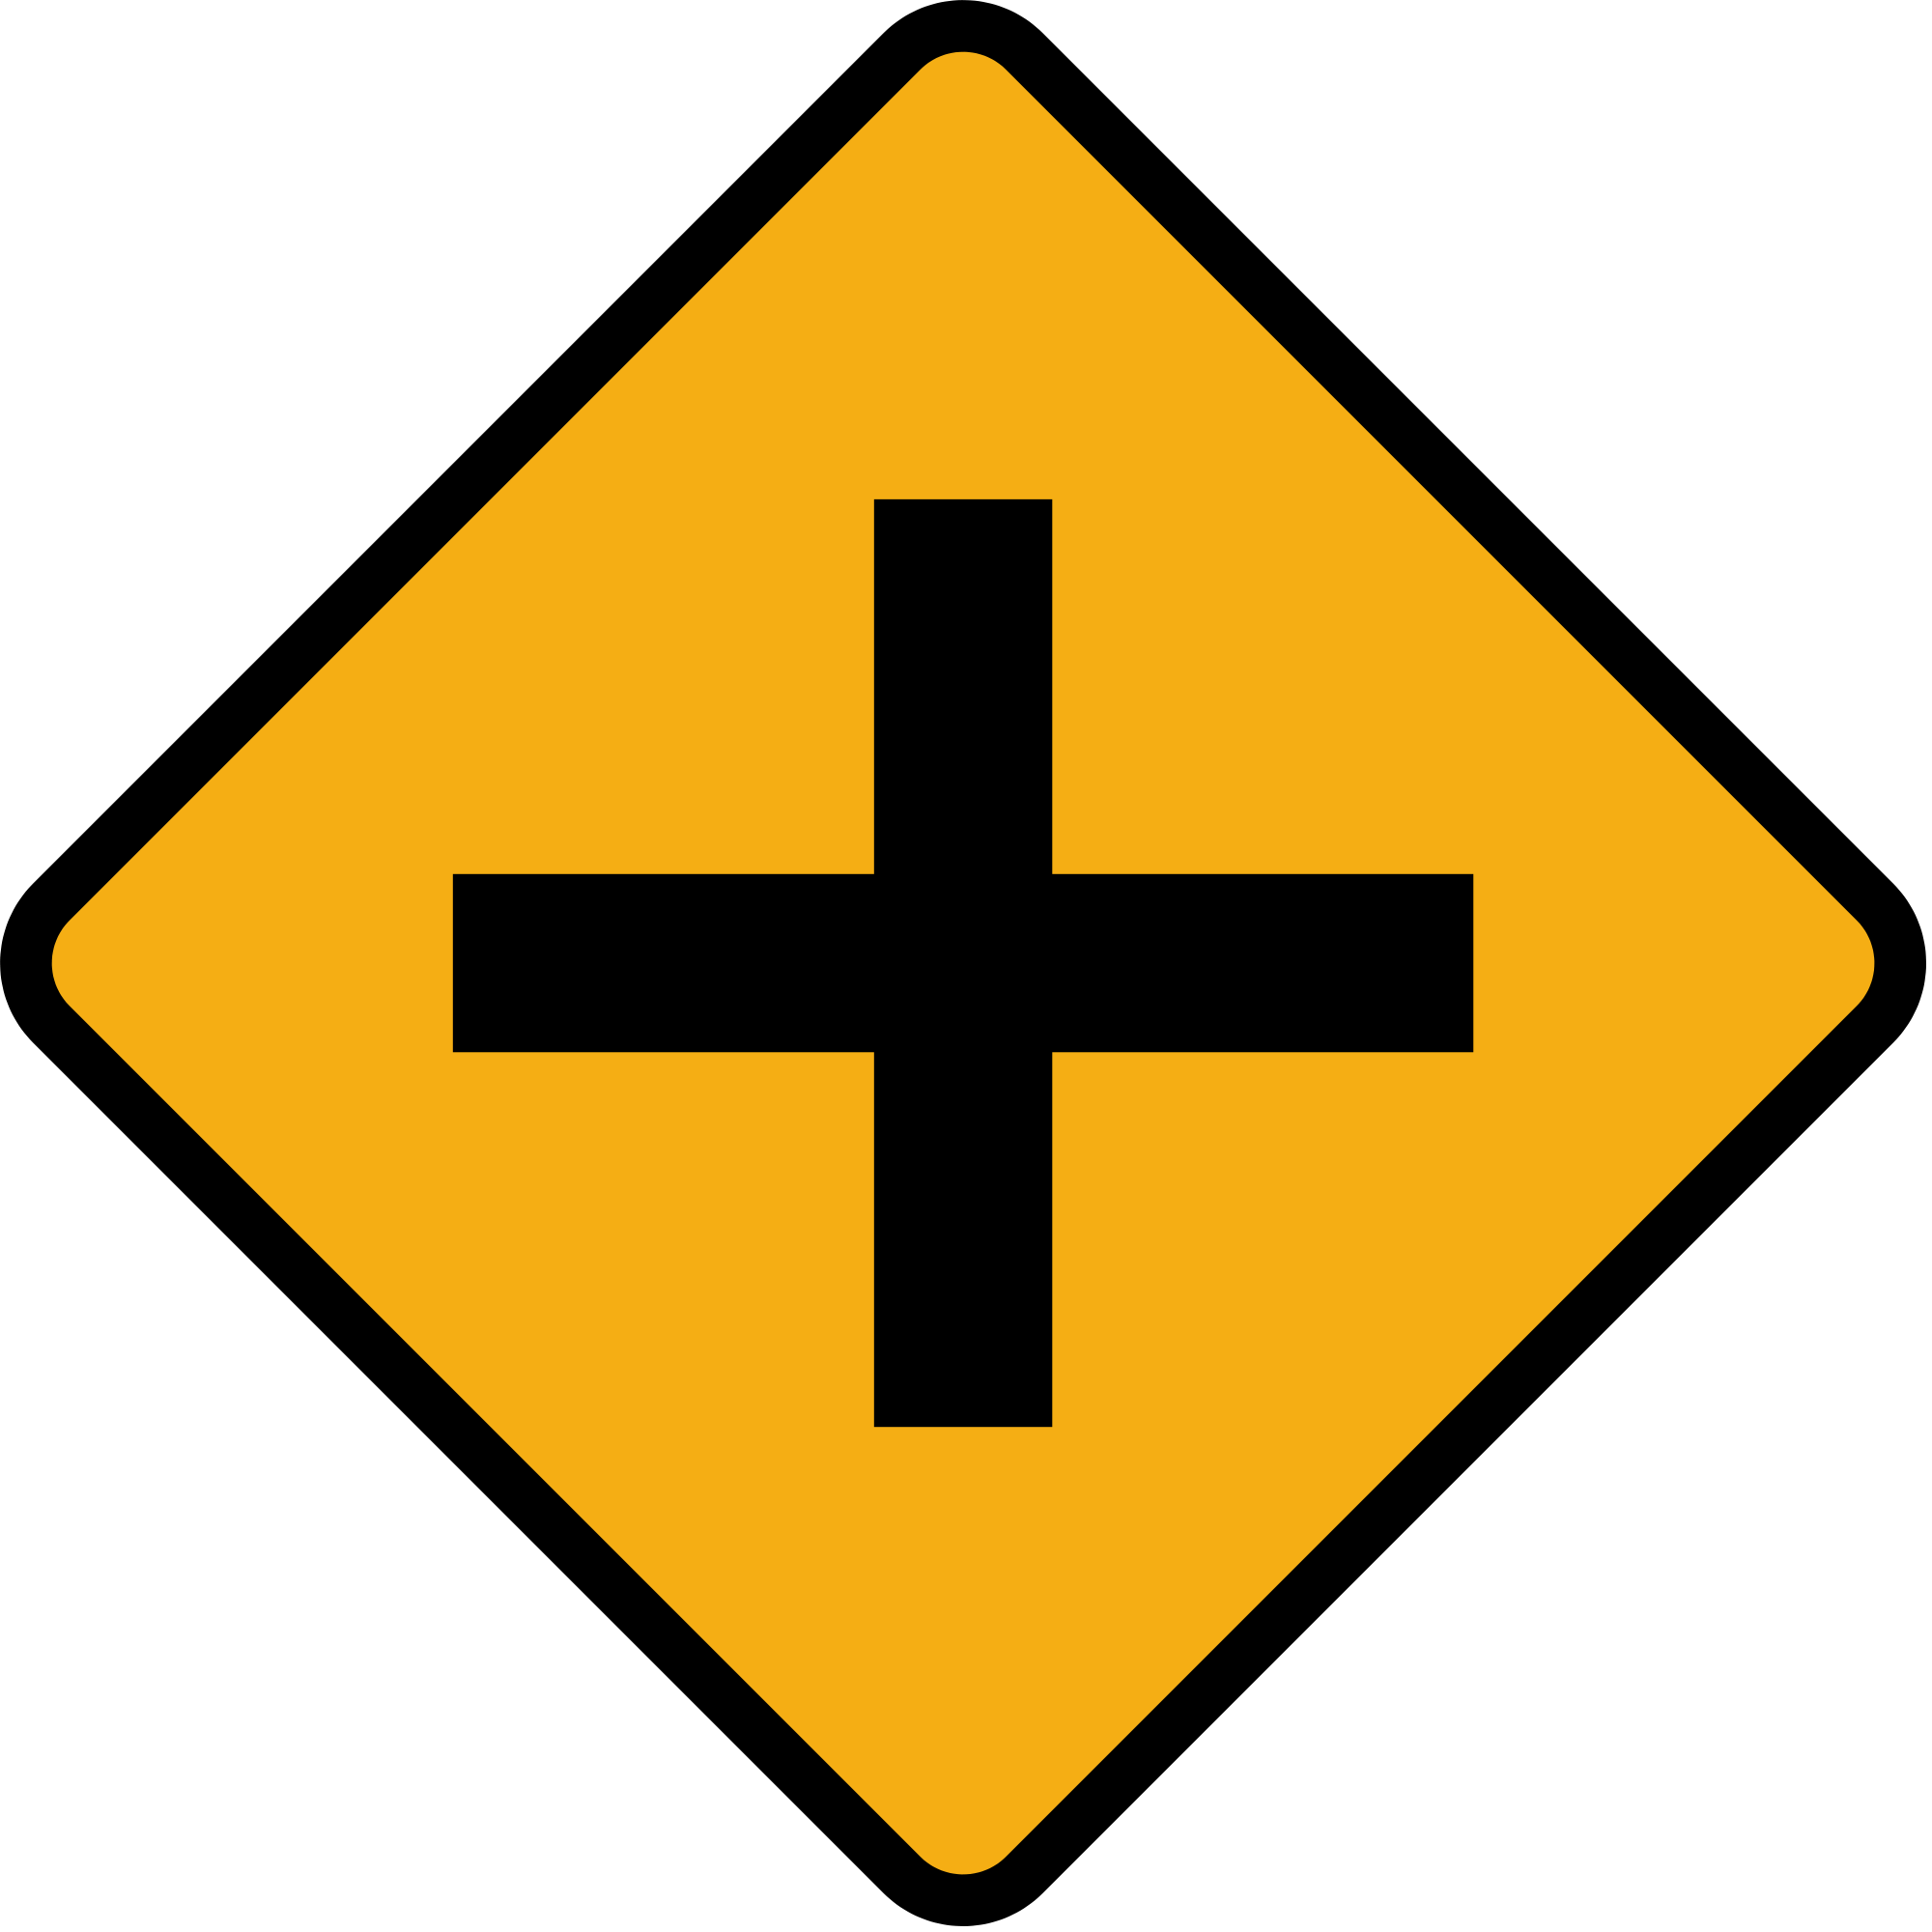 Cross street clipart image black and white File:Diamond road sign junction crossroads.svg - Wikimedia Commons image black and white